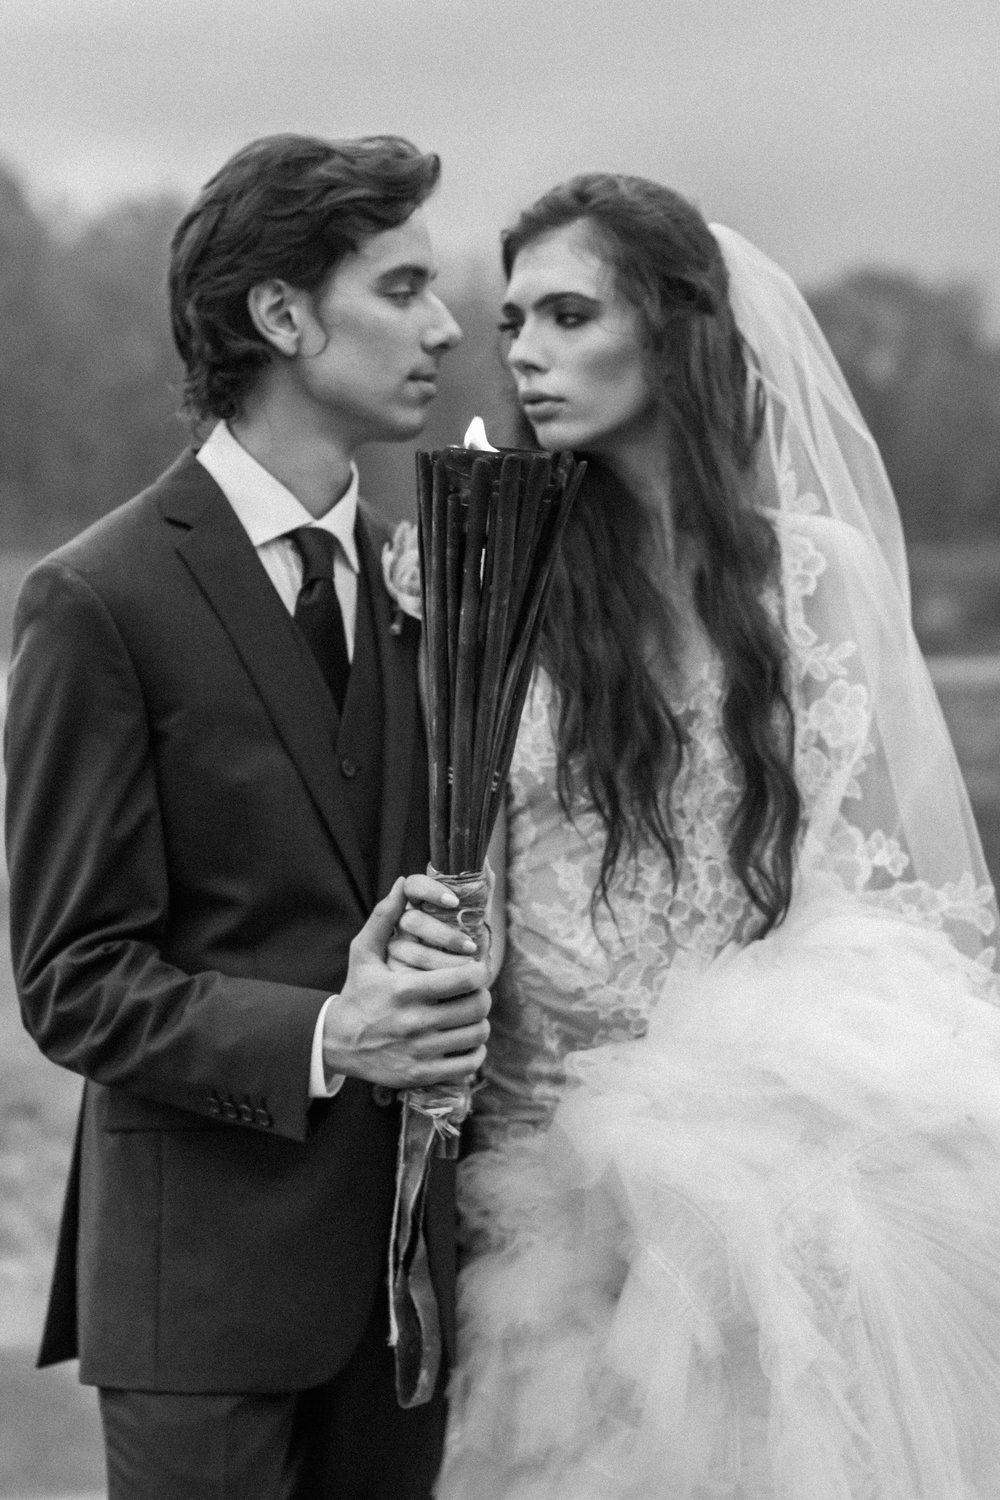 Dark & Moody Wedding Inspiration | Andrea Rodway Photography-45.jpg